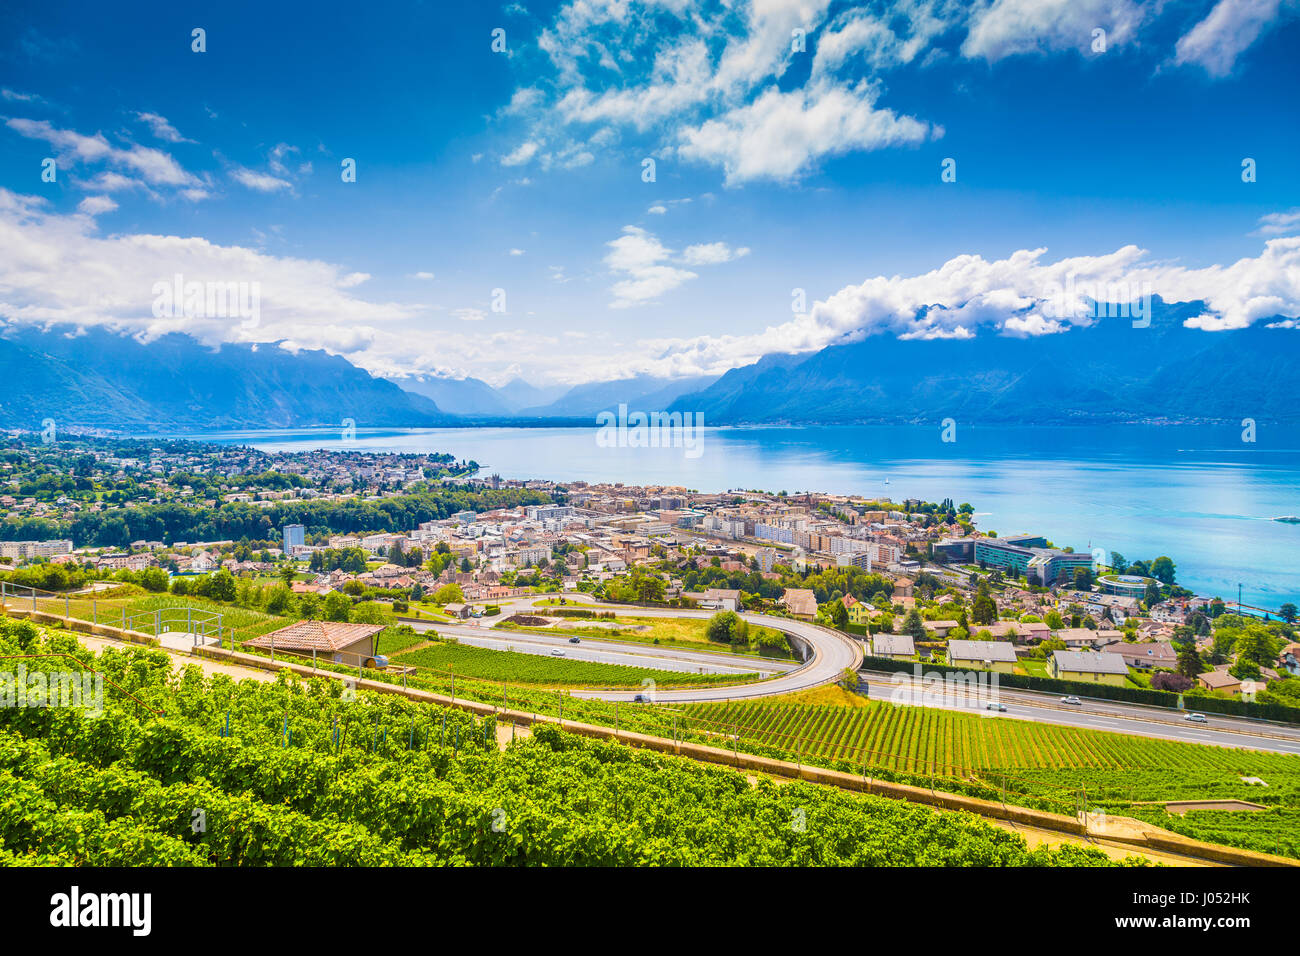 aerial panoramablick auf die stadt vevey am genfersee mit. Black Bedroom Furniture Sets. Home Design Ideas